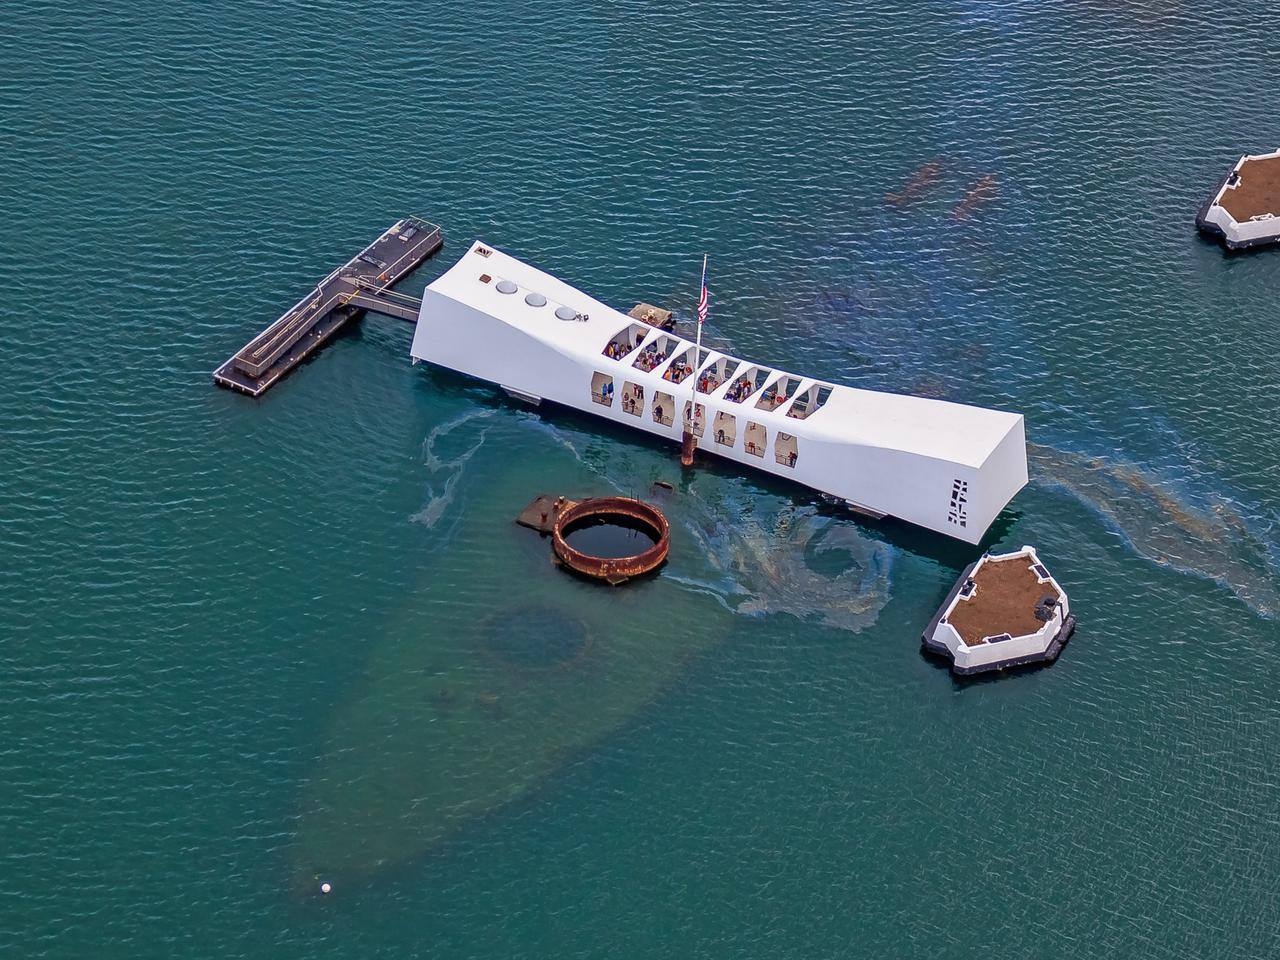 USS Arizona Memorial in Pearl Harbor Honolulu Hawaii